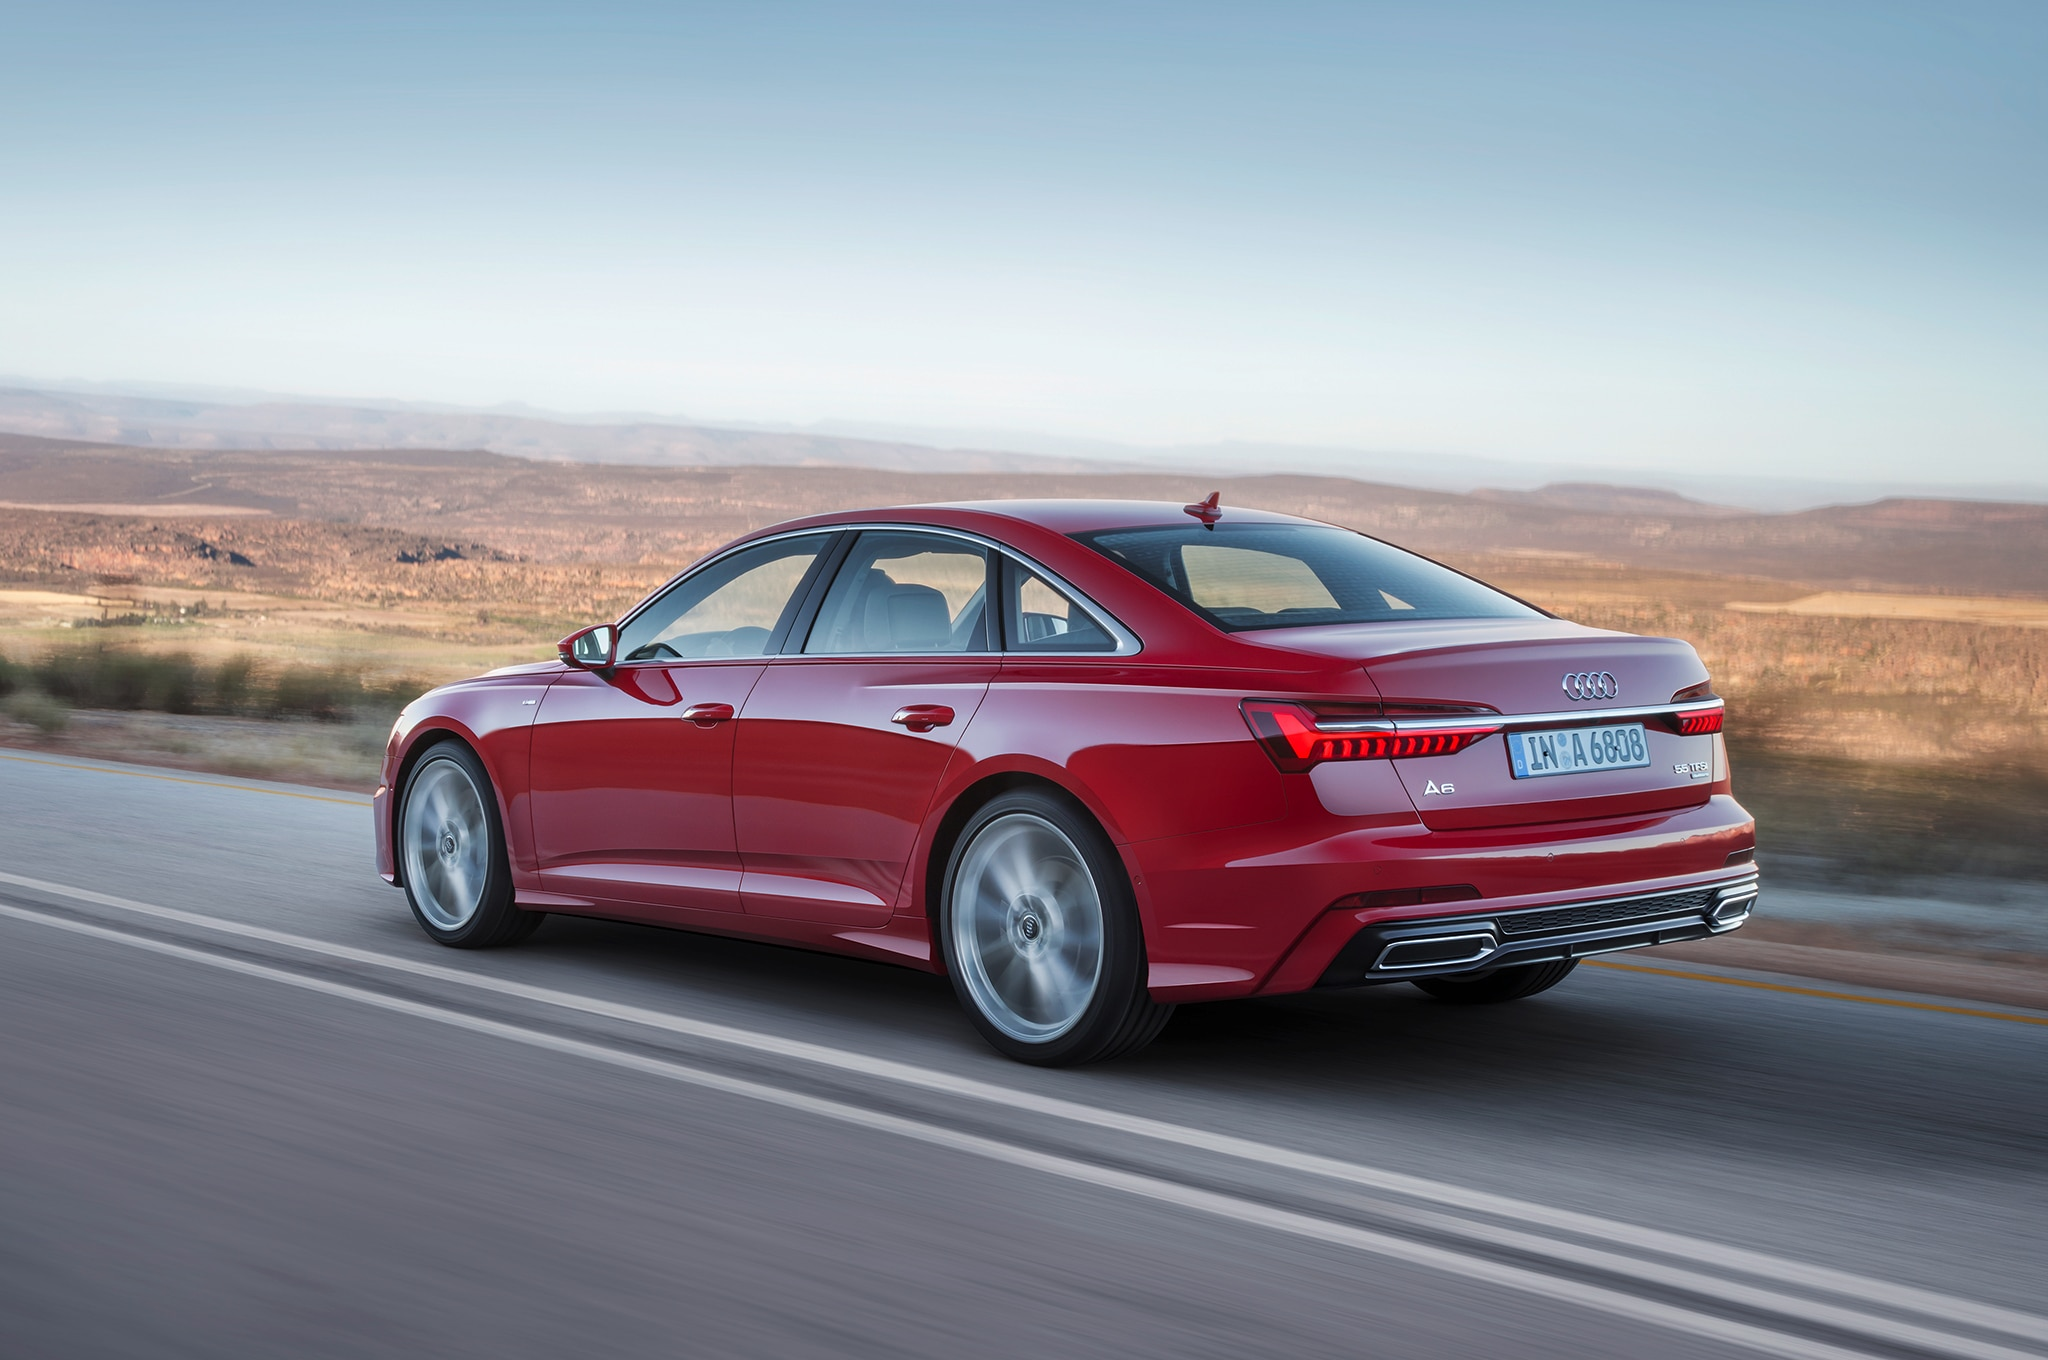 2019 Audi A6 Rear Three Quarter In Motion